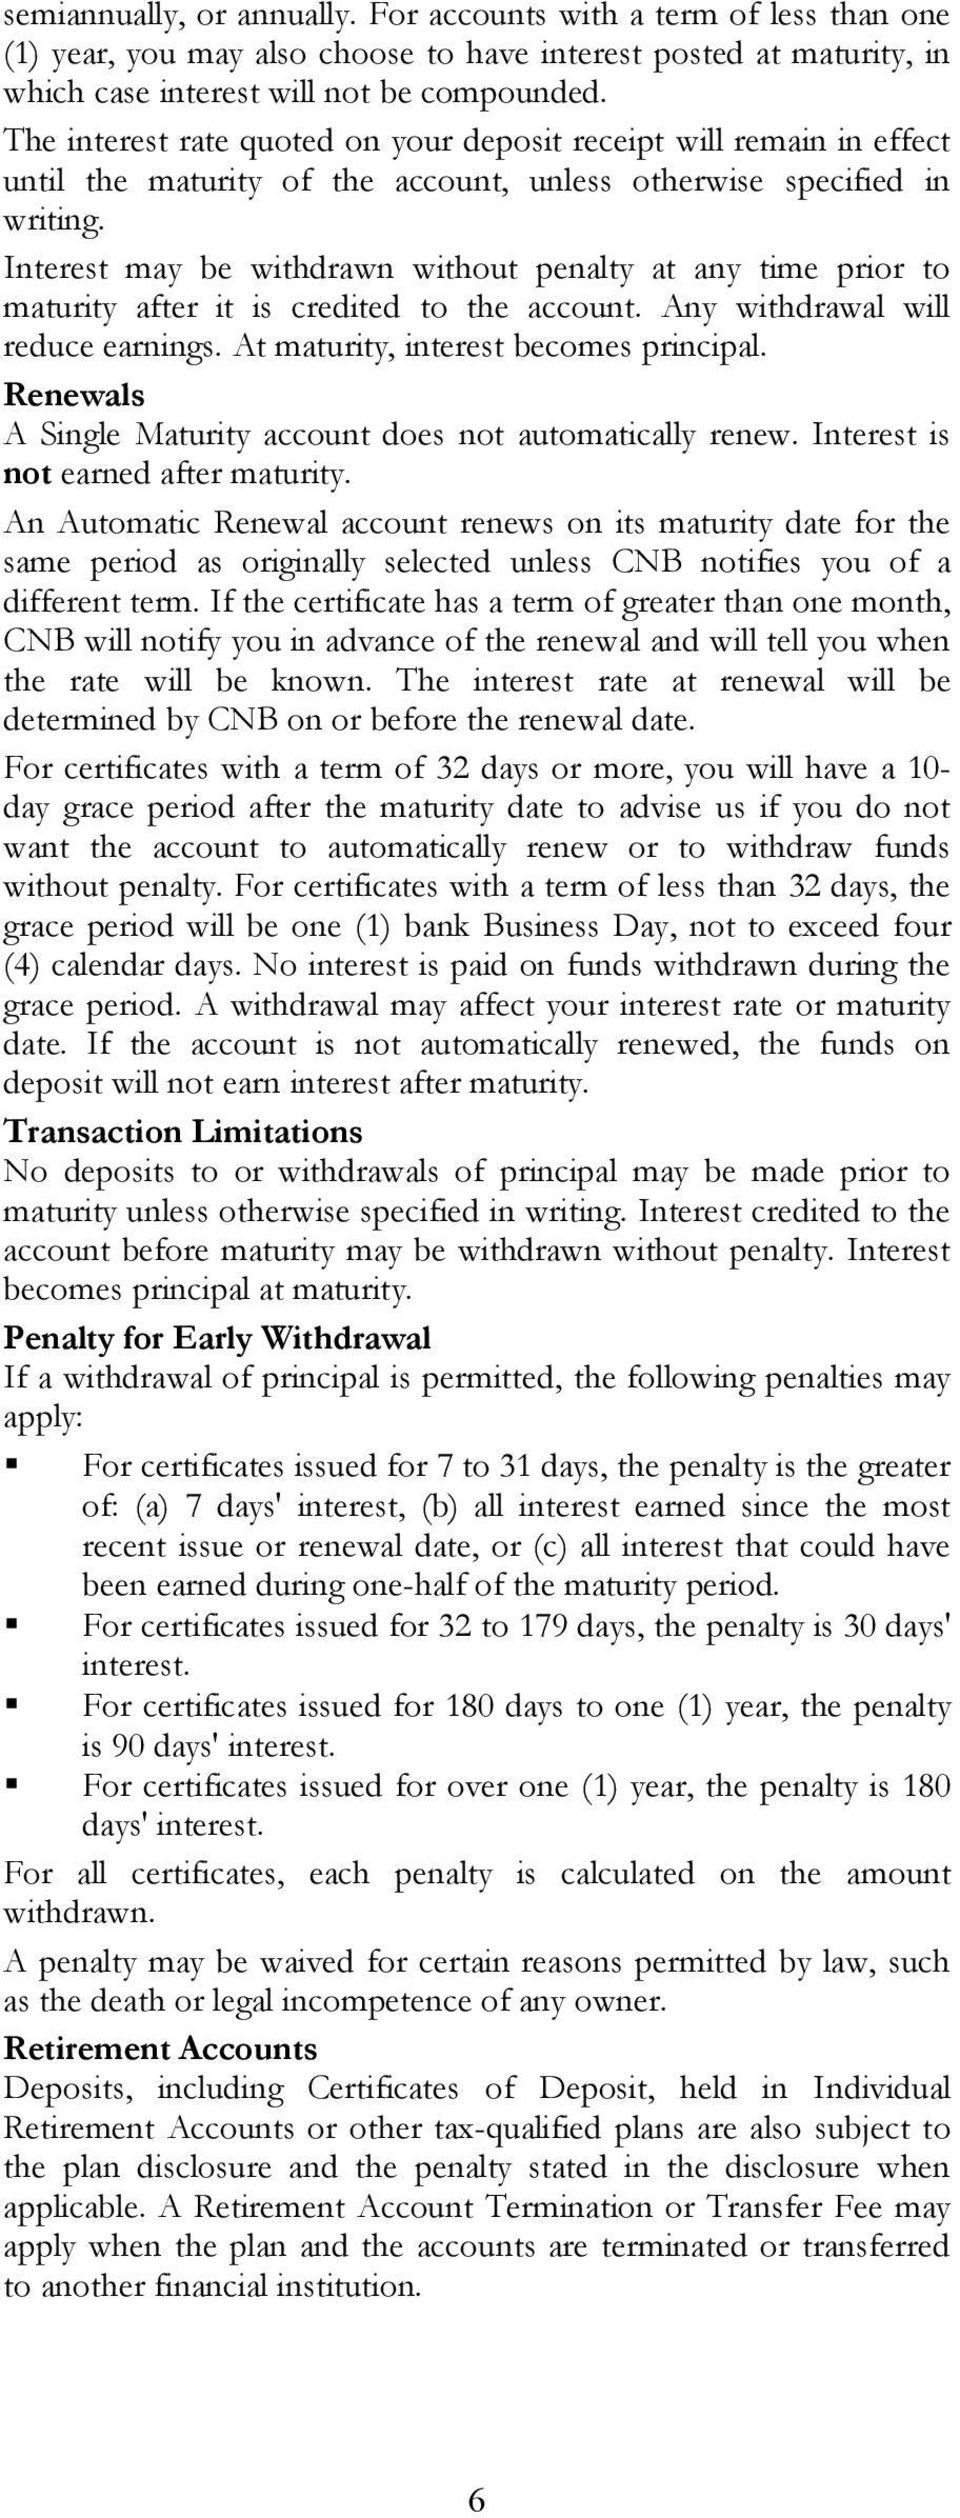 Interest may be withdrawn without penalty at any time prior to maturity after it is credited to the account. Any withdrawal will reduce earnings. At maturity, interest becomes principal.